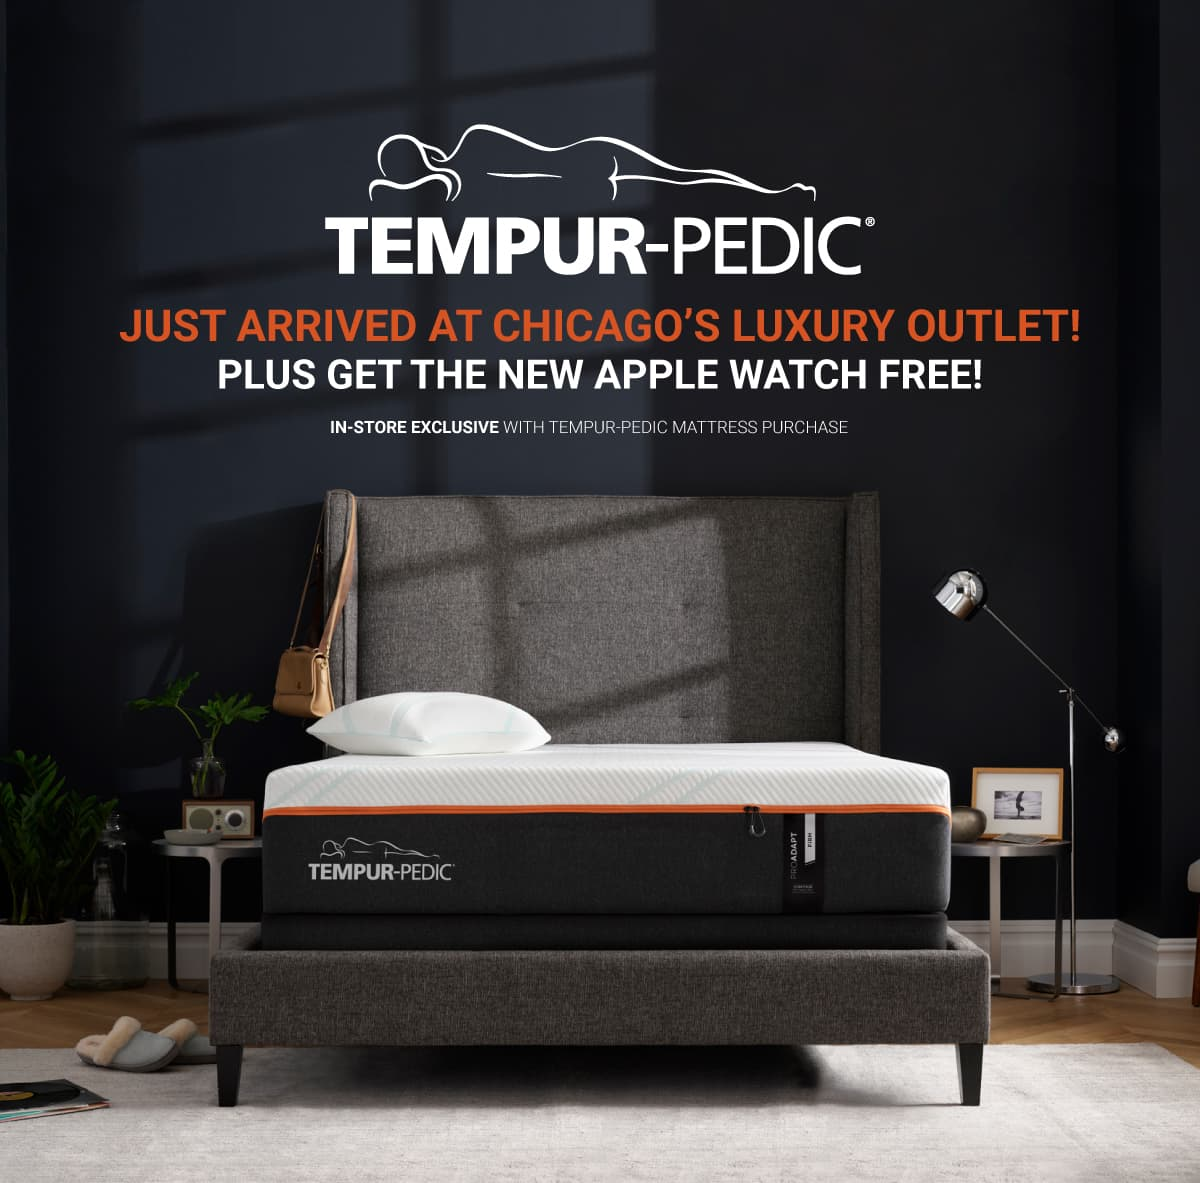 Tempur-pedic just arrived at chicago's luxury outlet! Plus get the new Apple watch free! In-store exclusive with Tempur-pedic mattress purchase.